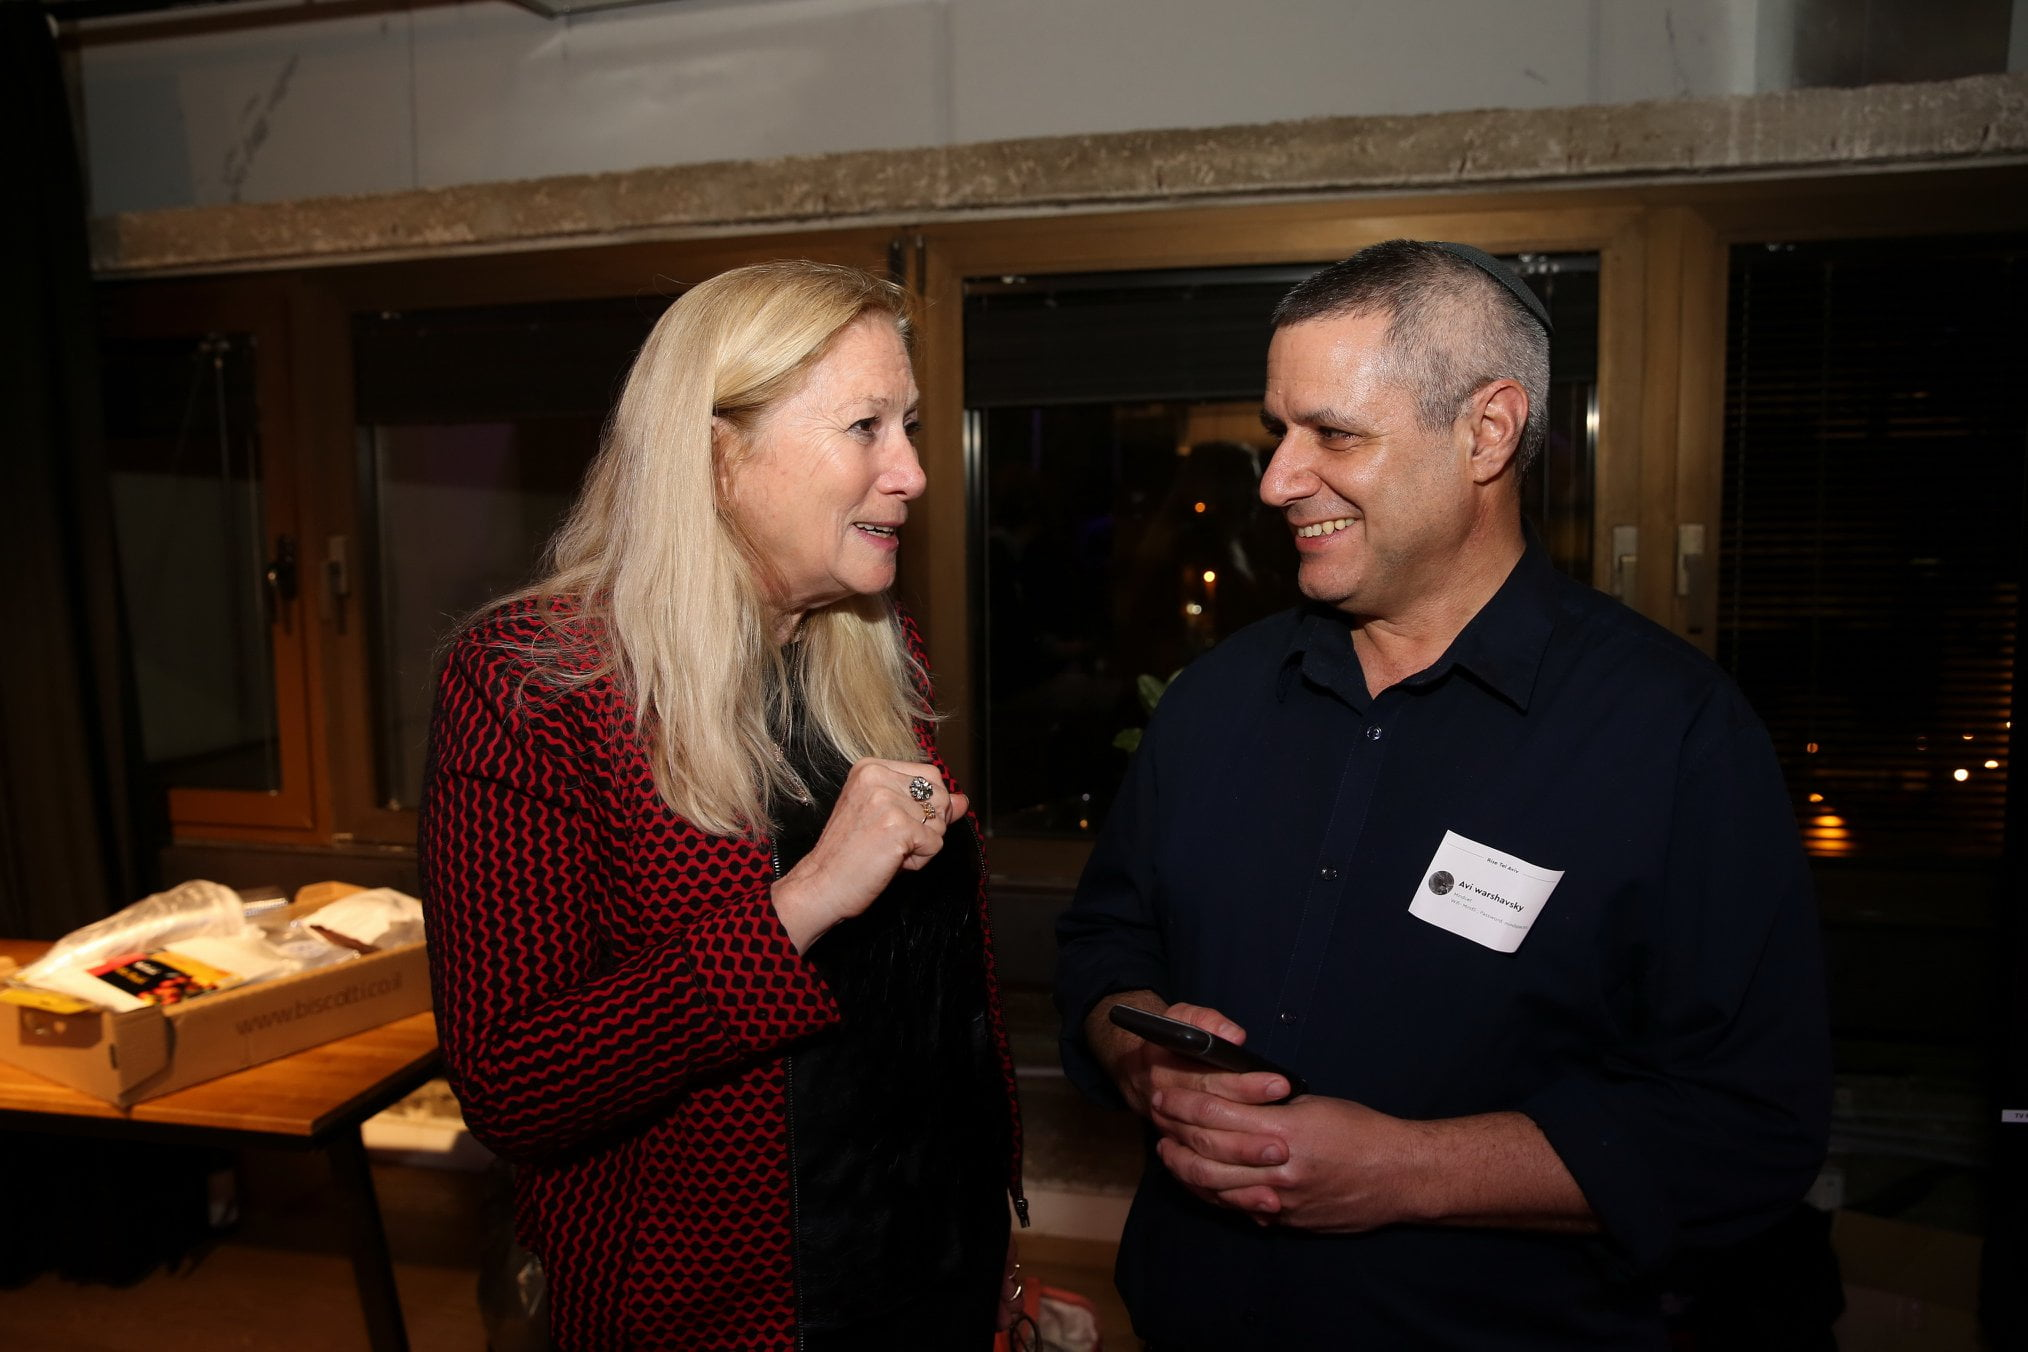 The Israeli Innovation Authority's VP, Startup Division Anya Eldan speaks with MindCET CEO Avi Warshavsky before the start of the Demo Day pitches. Photo by Eliran Avital.